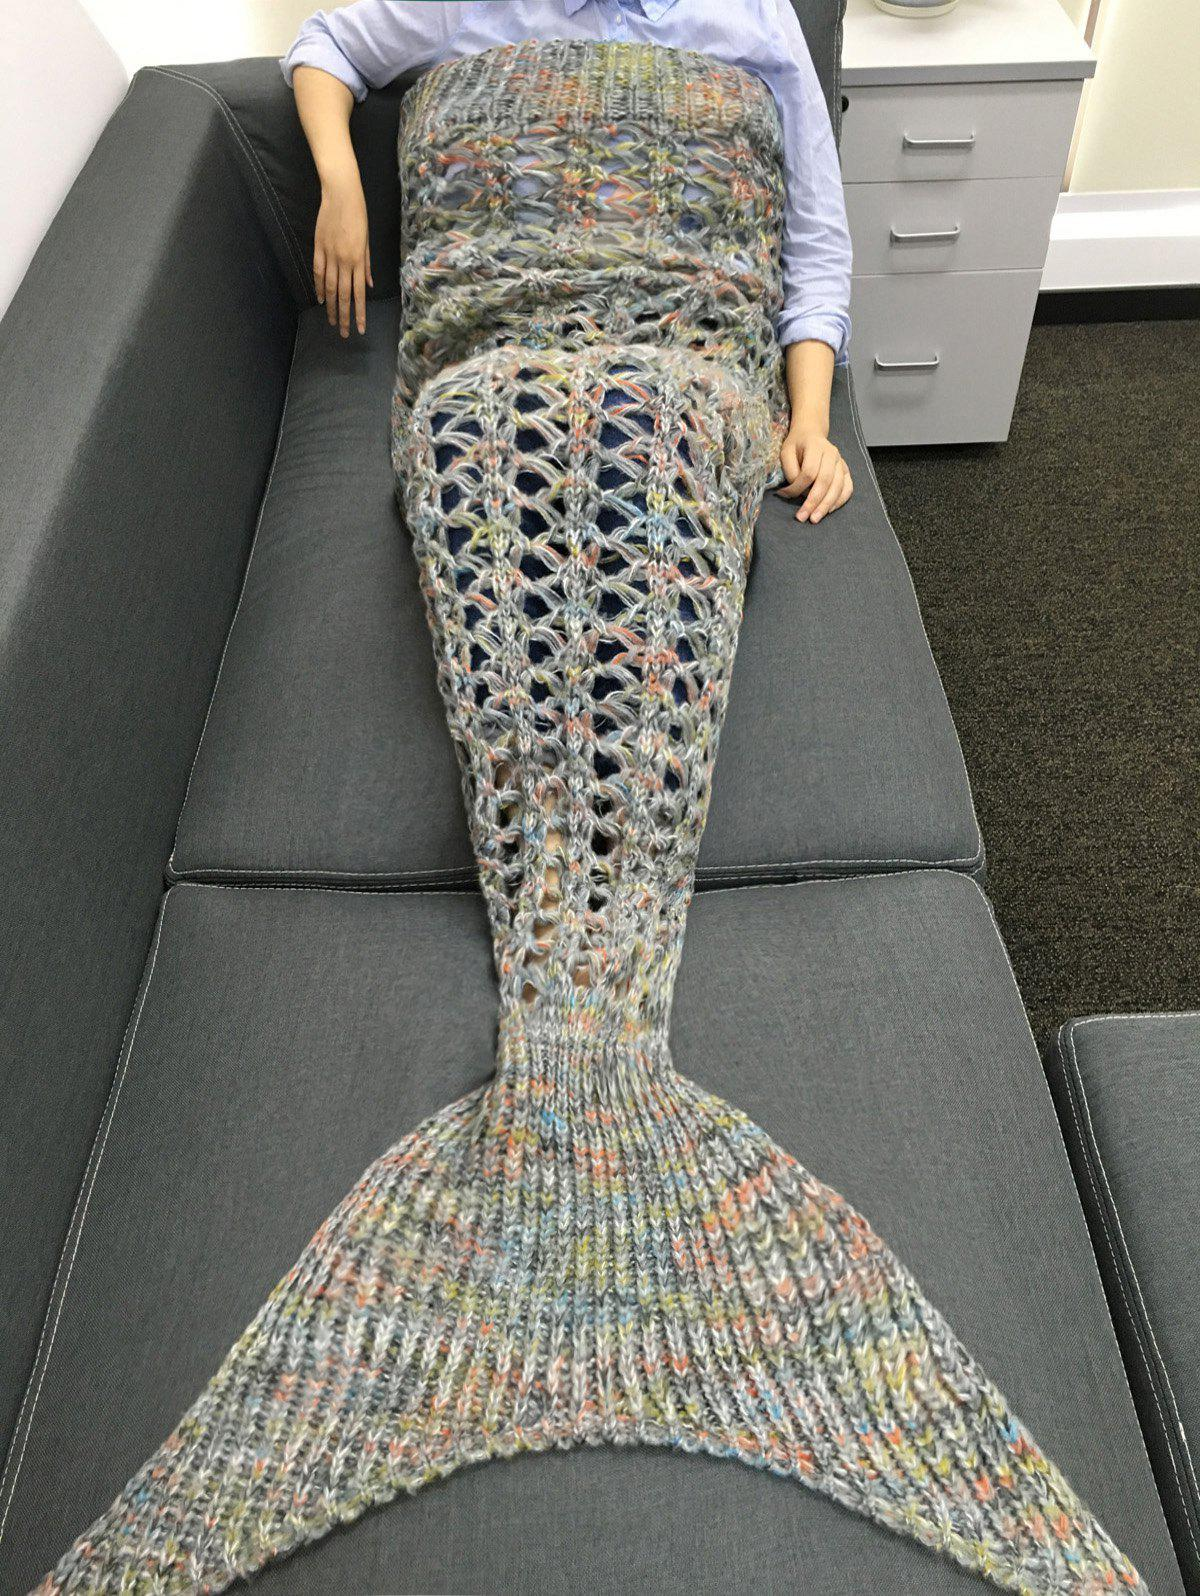 High Quality Cut Out Rhombus Design Knitting Mermaid Shape Blanket - GRAY